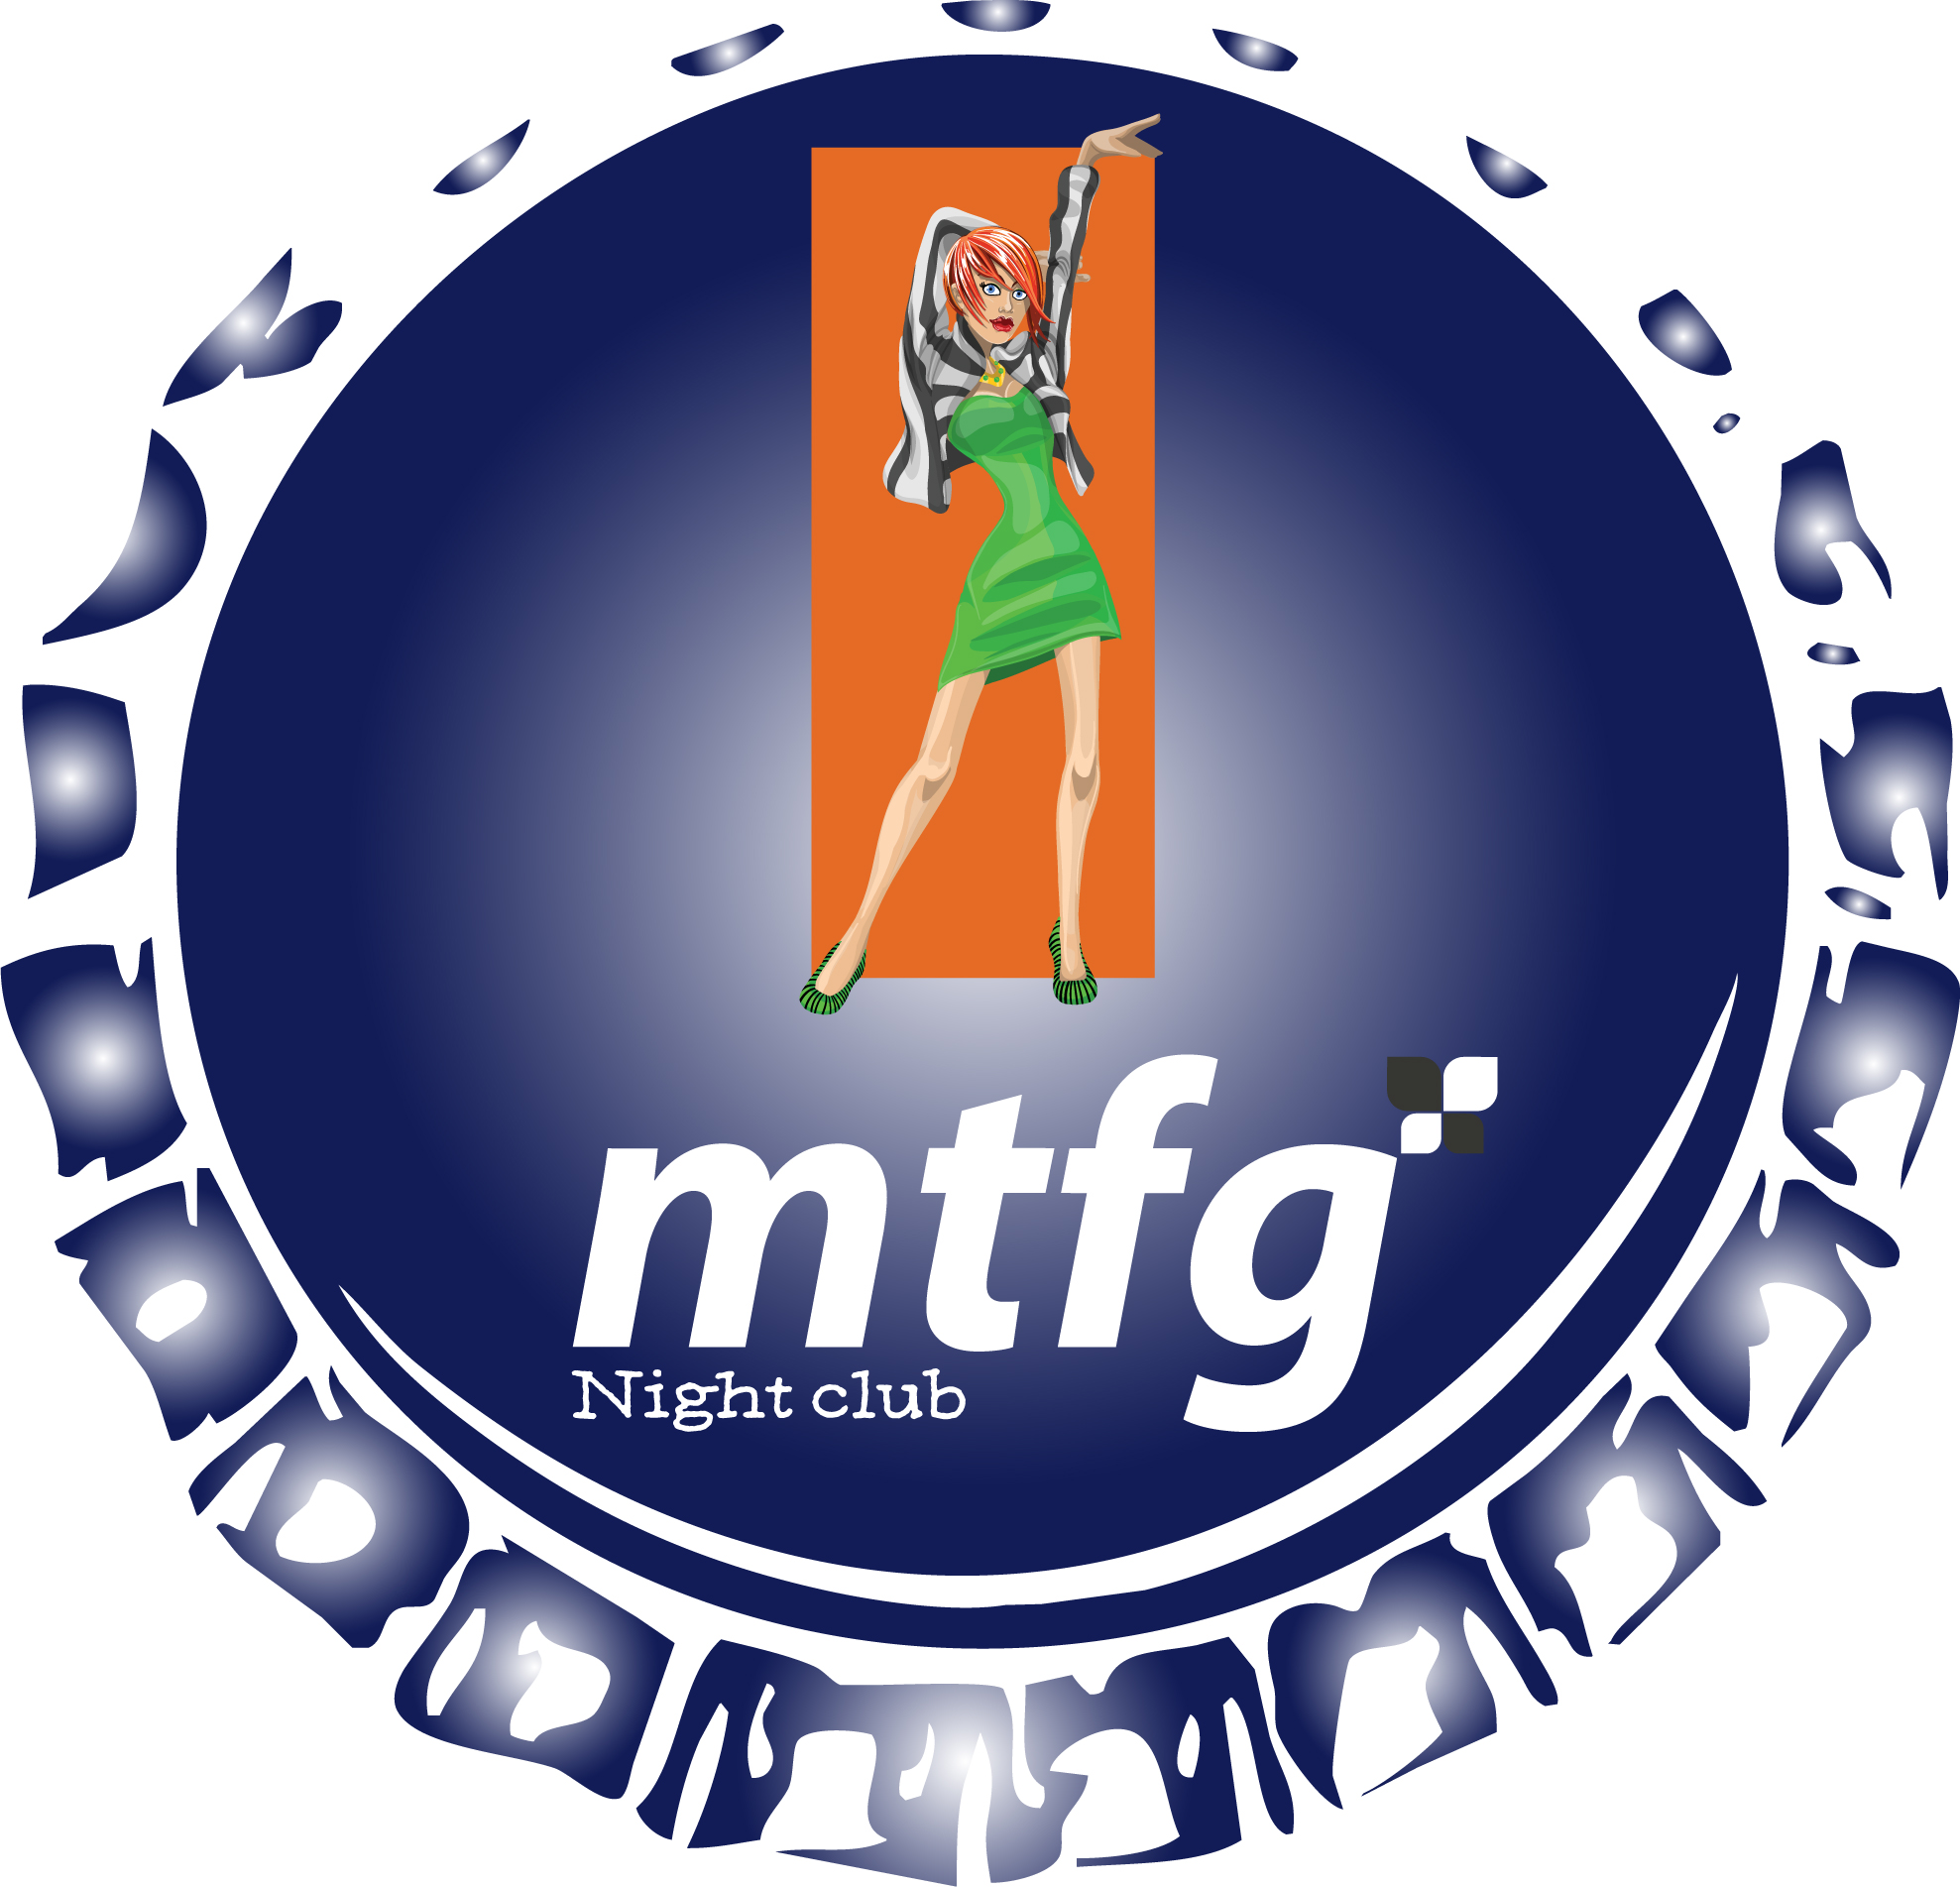 MTFG Night club